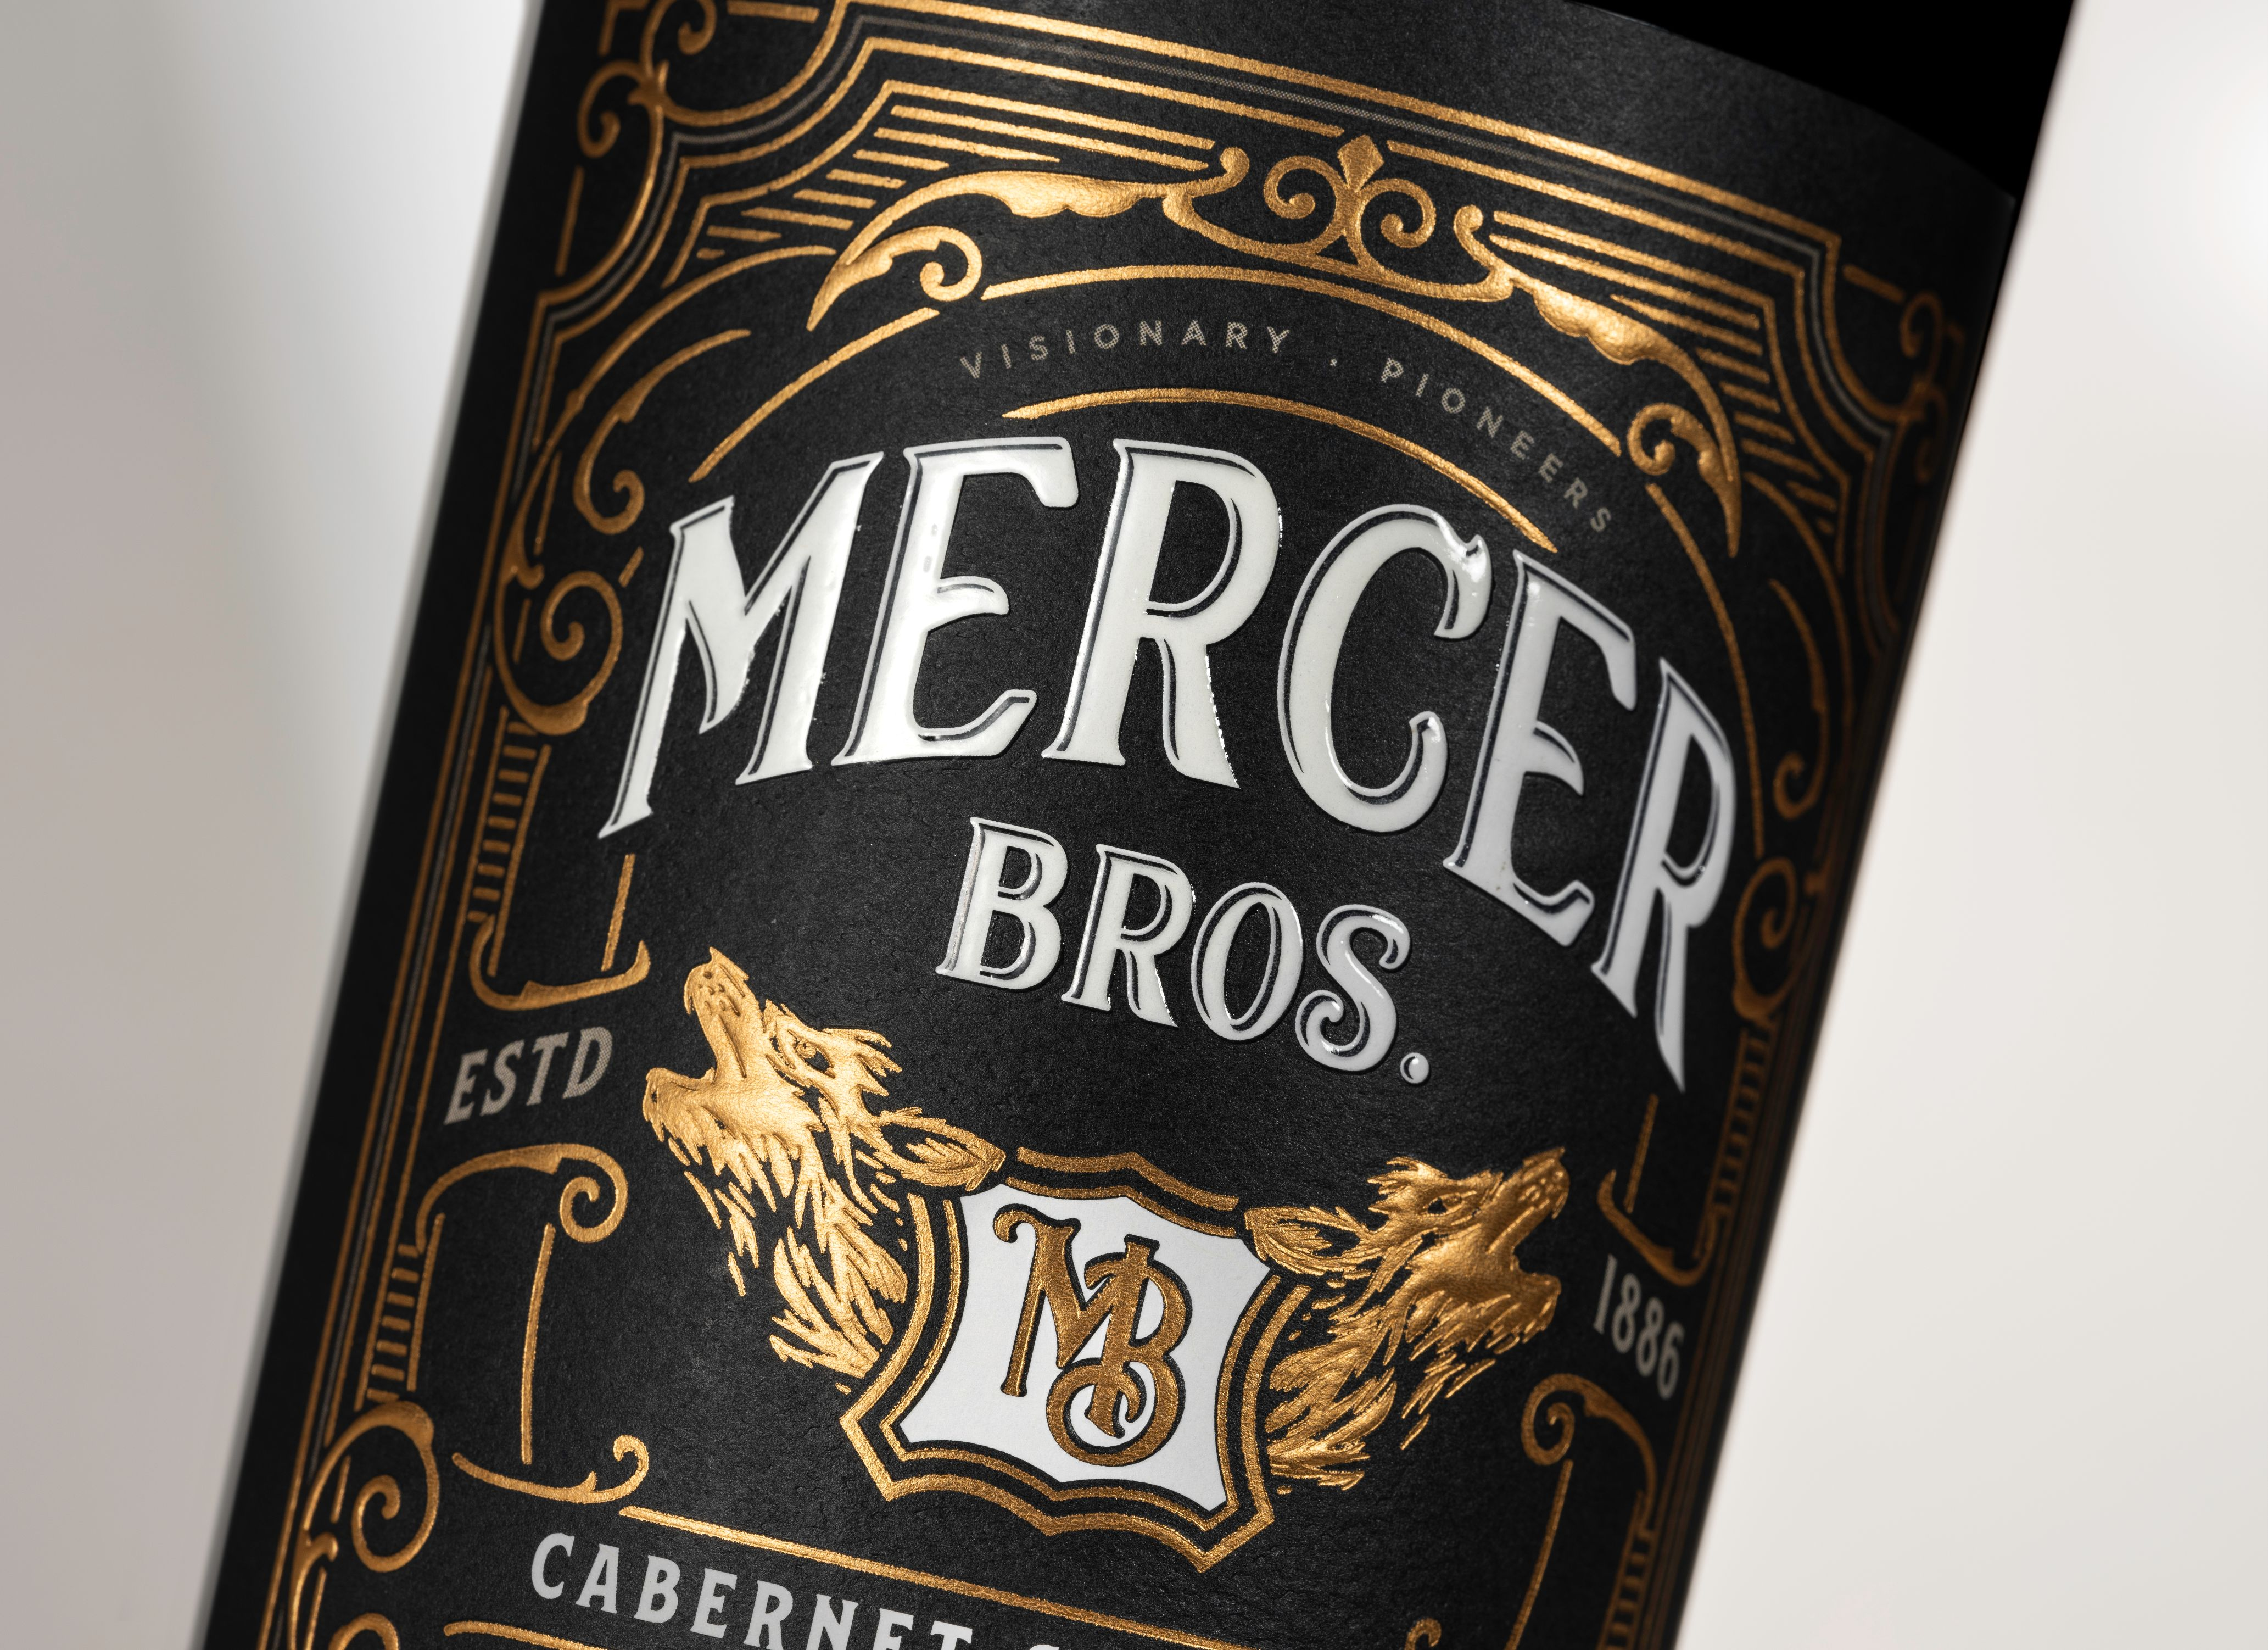 Mercer Bros. Wine Packaging Redesign and Reimagined with Attitude by Affinity Creative Group